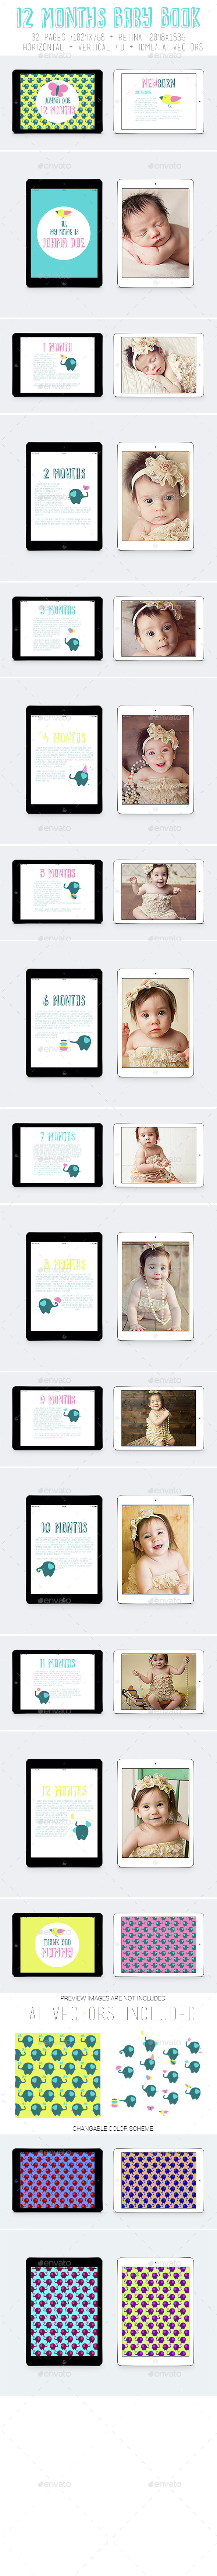 Ipad&Tablet 12 Months Baby Book - Digital Magazines ePublishing